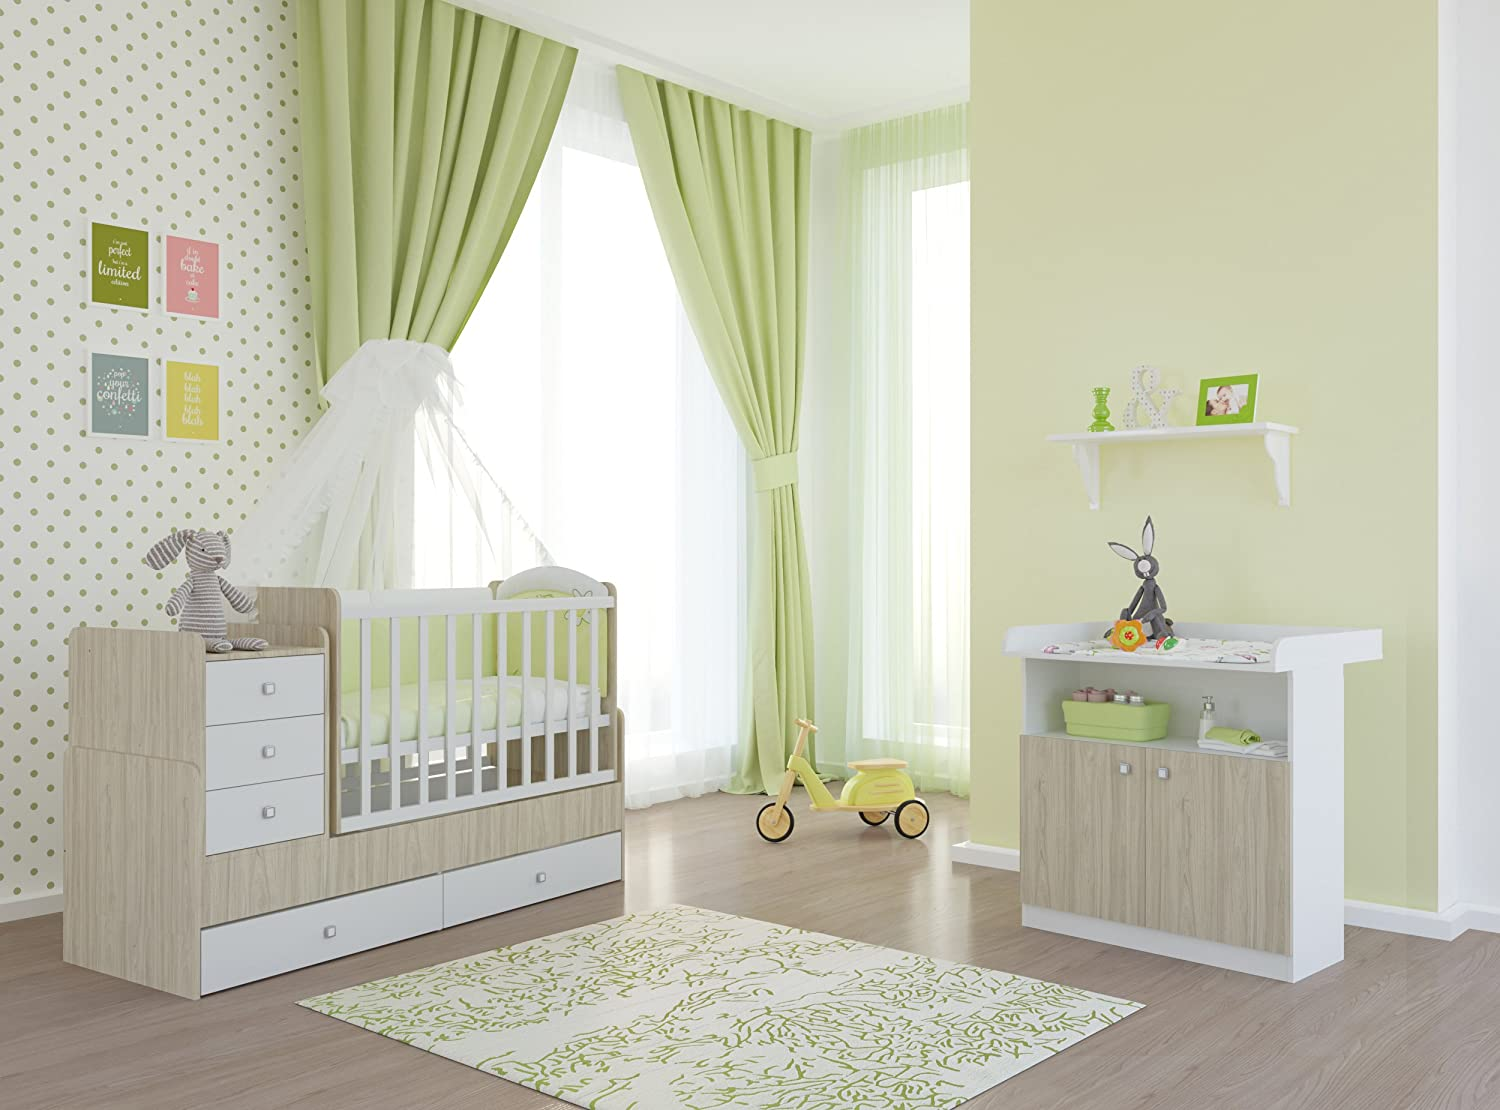 polini kids babyzimmer set mit babybett kinderbett. Black Bedroom Furniture Sets. Home Design Ideas